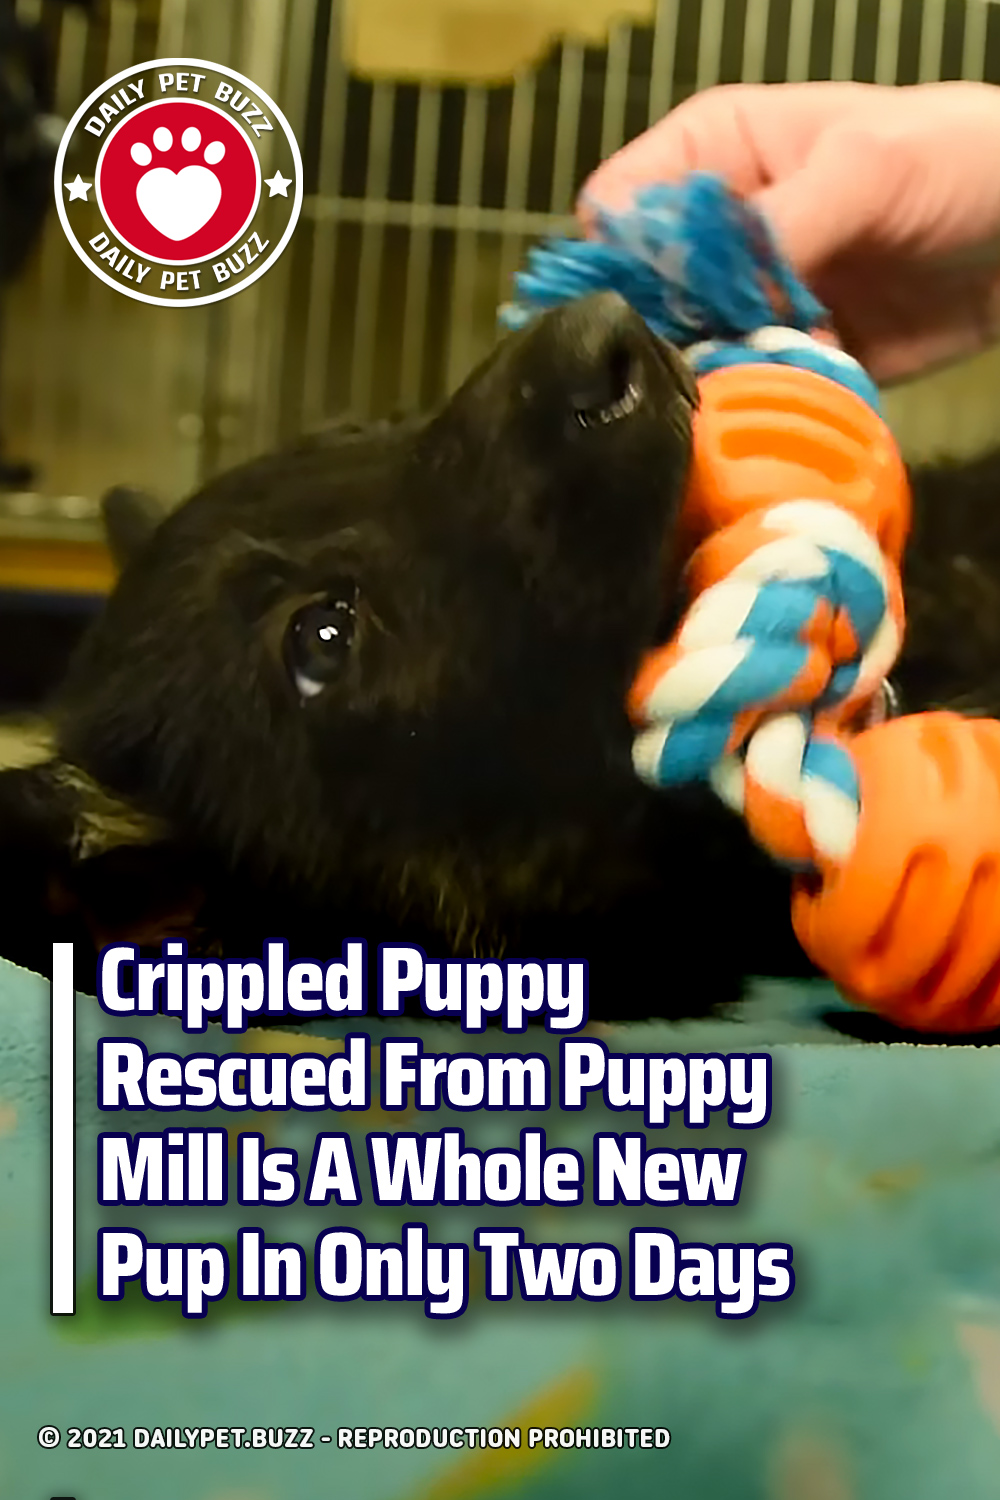 Crippled Puppy Rescued From Puppy Mill Is A Whole New Pup In Only Two Days